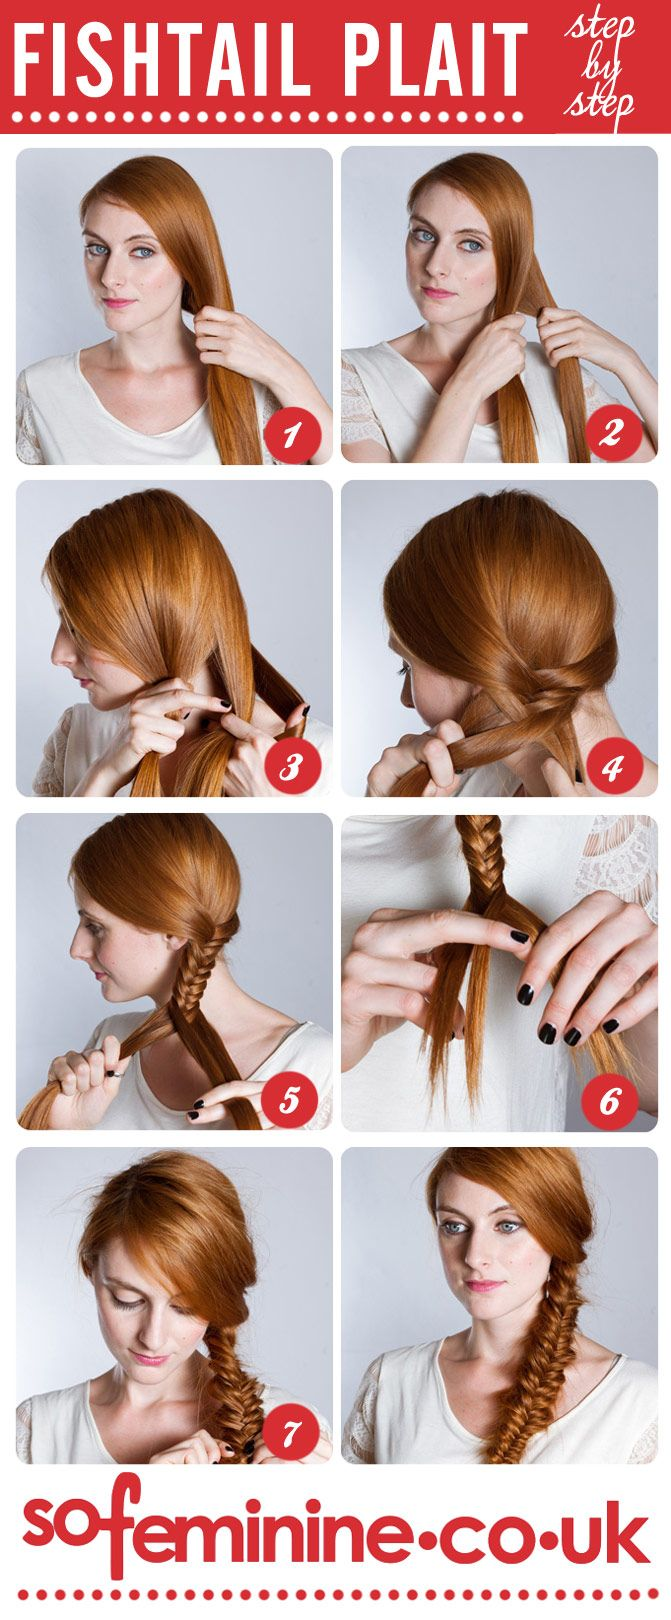 Try Hairstyles Fair The Fishtail Plait Is A Musthave Hair 'do This Seasontry It Out